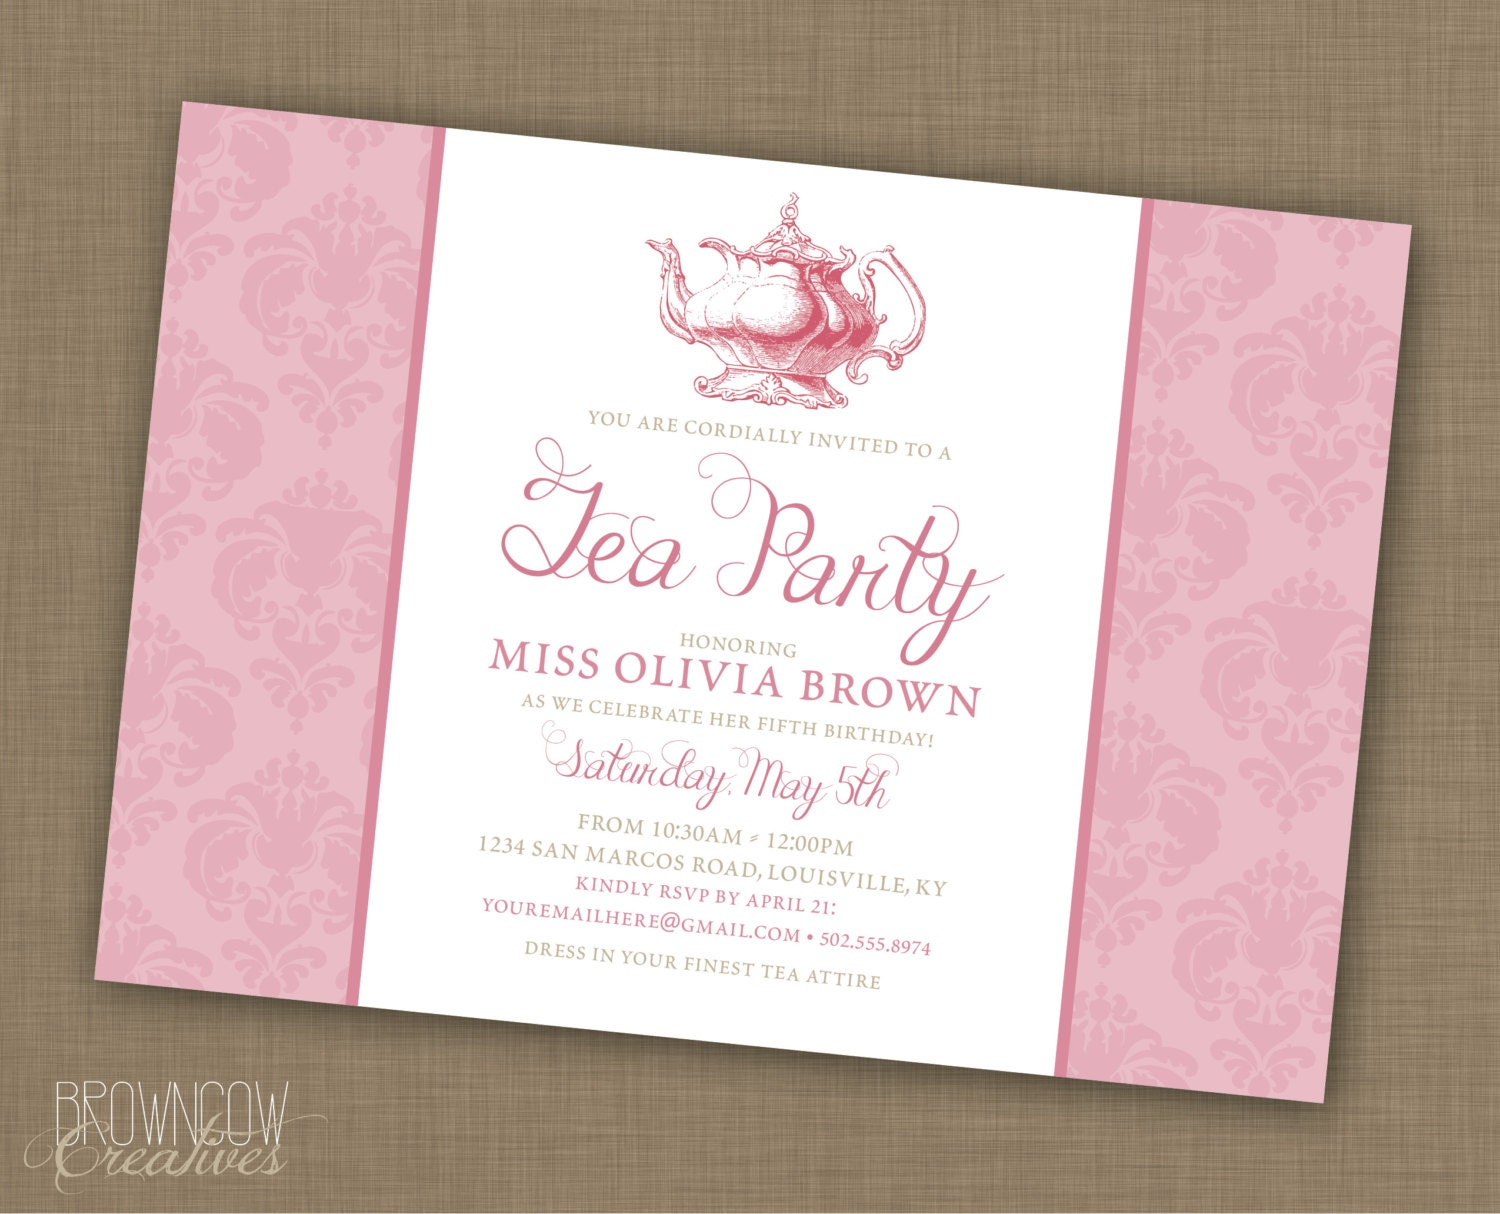 It's just an image of Hilaire Printable Tea Party Invitations